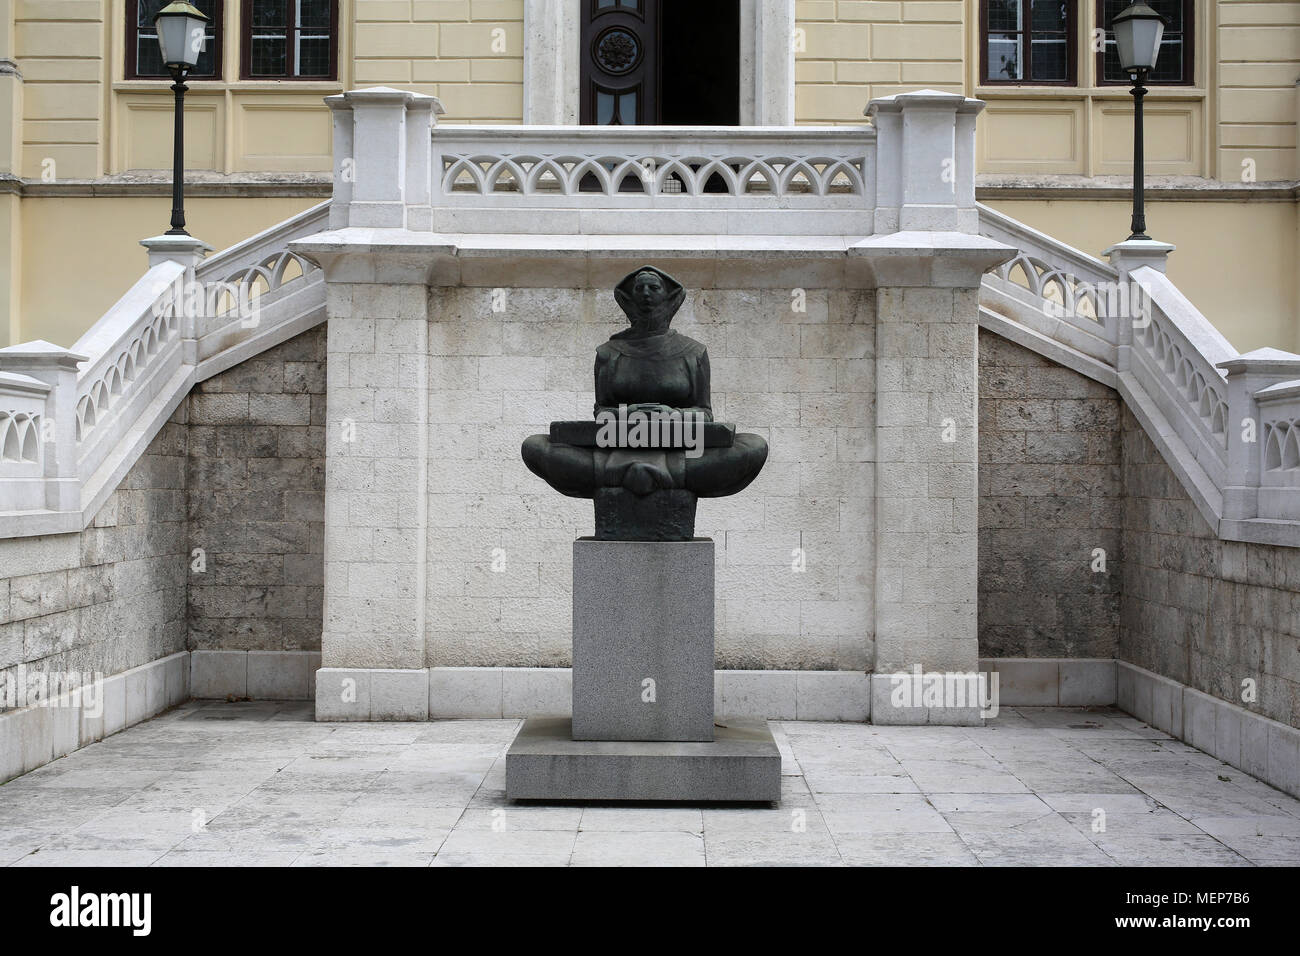 History of the Croats, sculpture by Ivan Mestrovic, located in front Zagreb university building, Croatia. - Stock Image